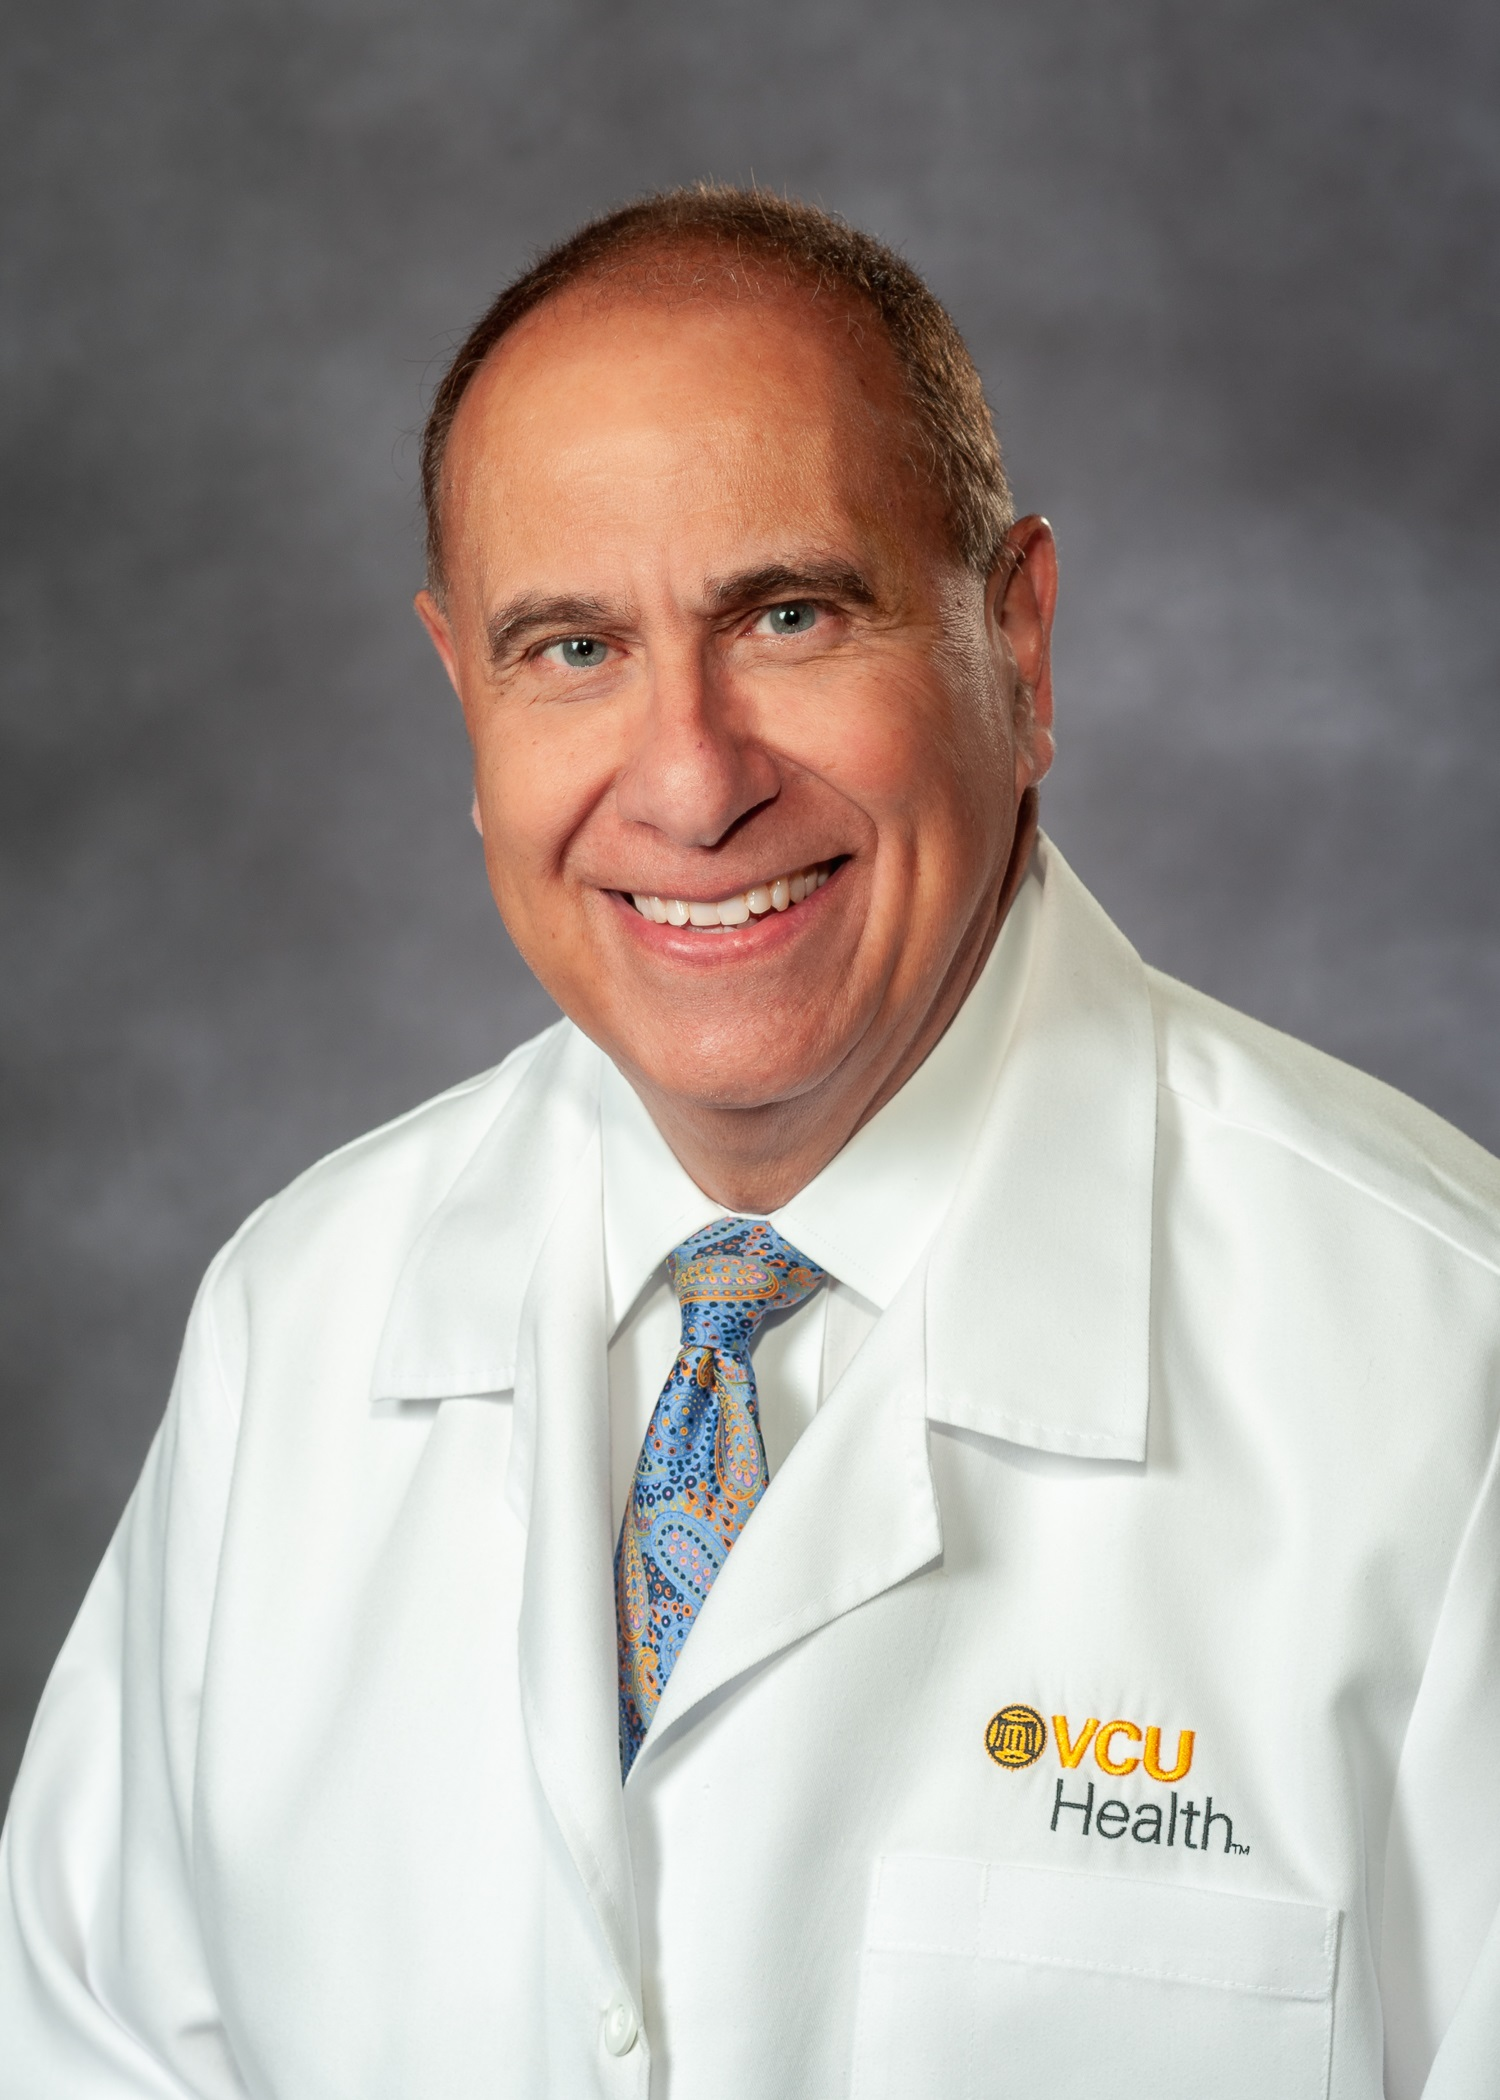 Dr. Joseph Ornato to Transition Away from Role as Emergency Medicine Chair